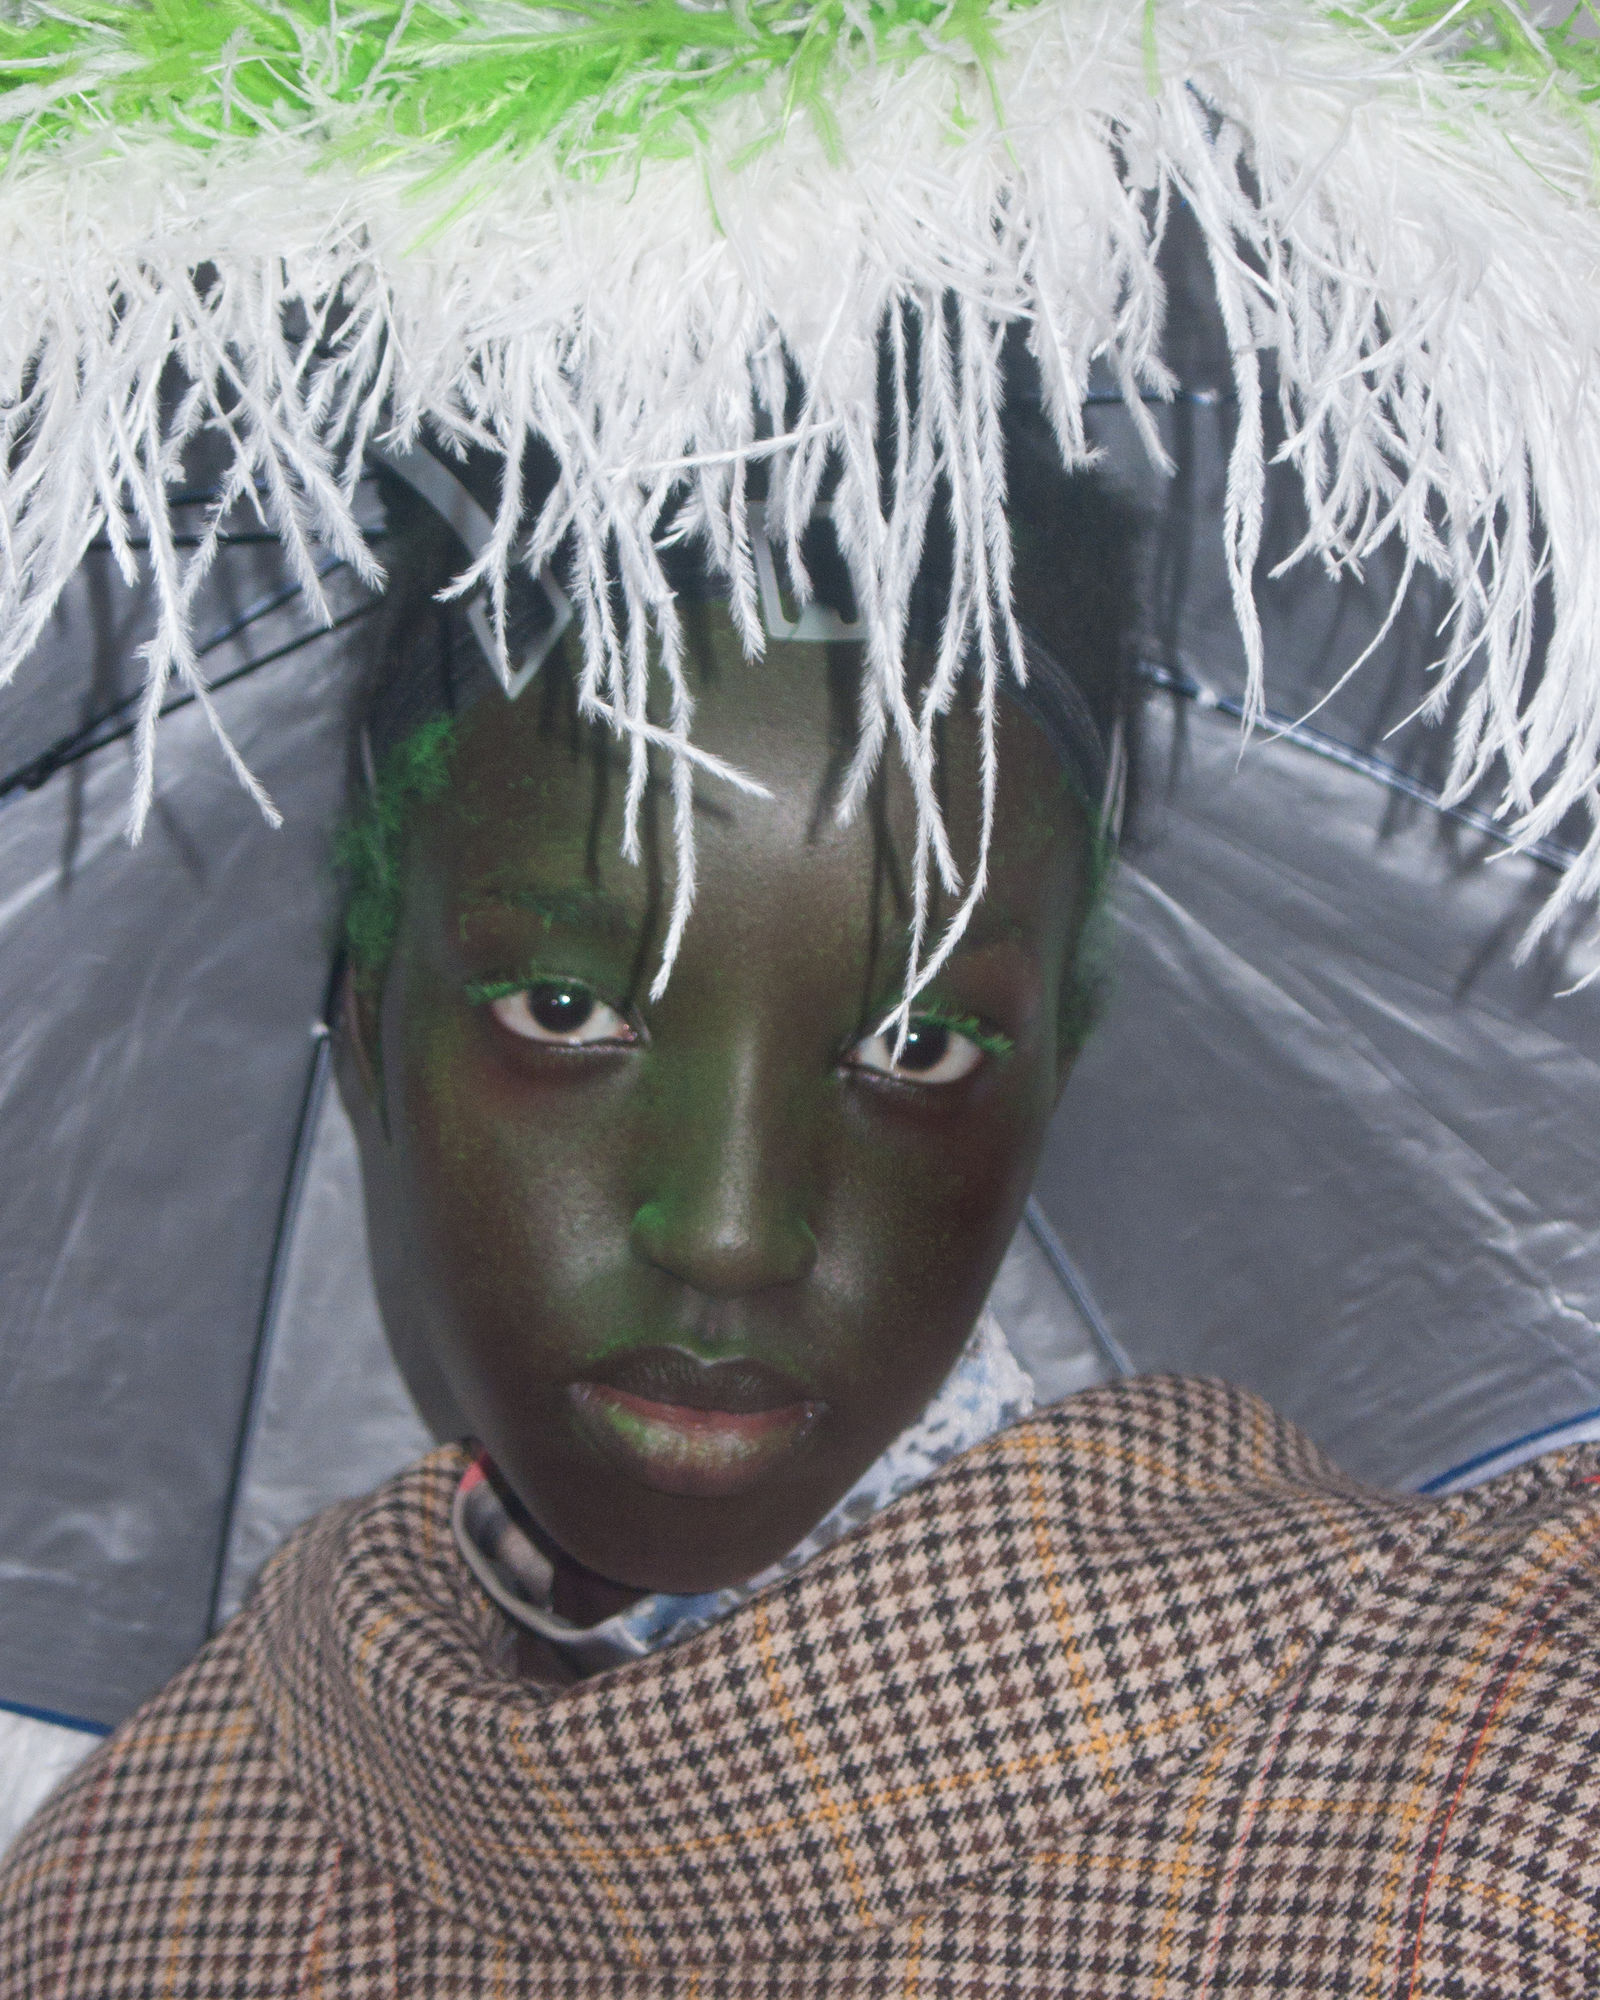 Tom Blesch shoots for Vogue Germany // COLLECTIVEINTEREST ARTIST MANAGEMENT